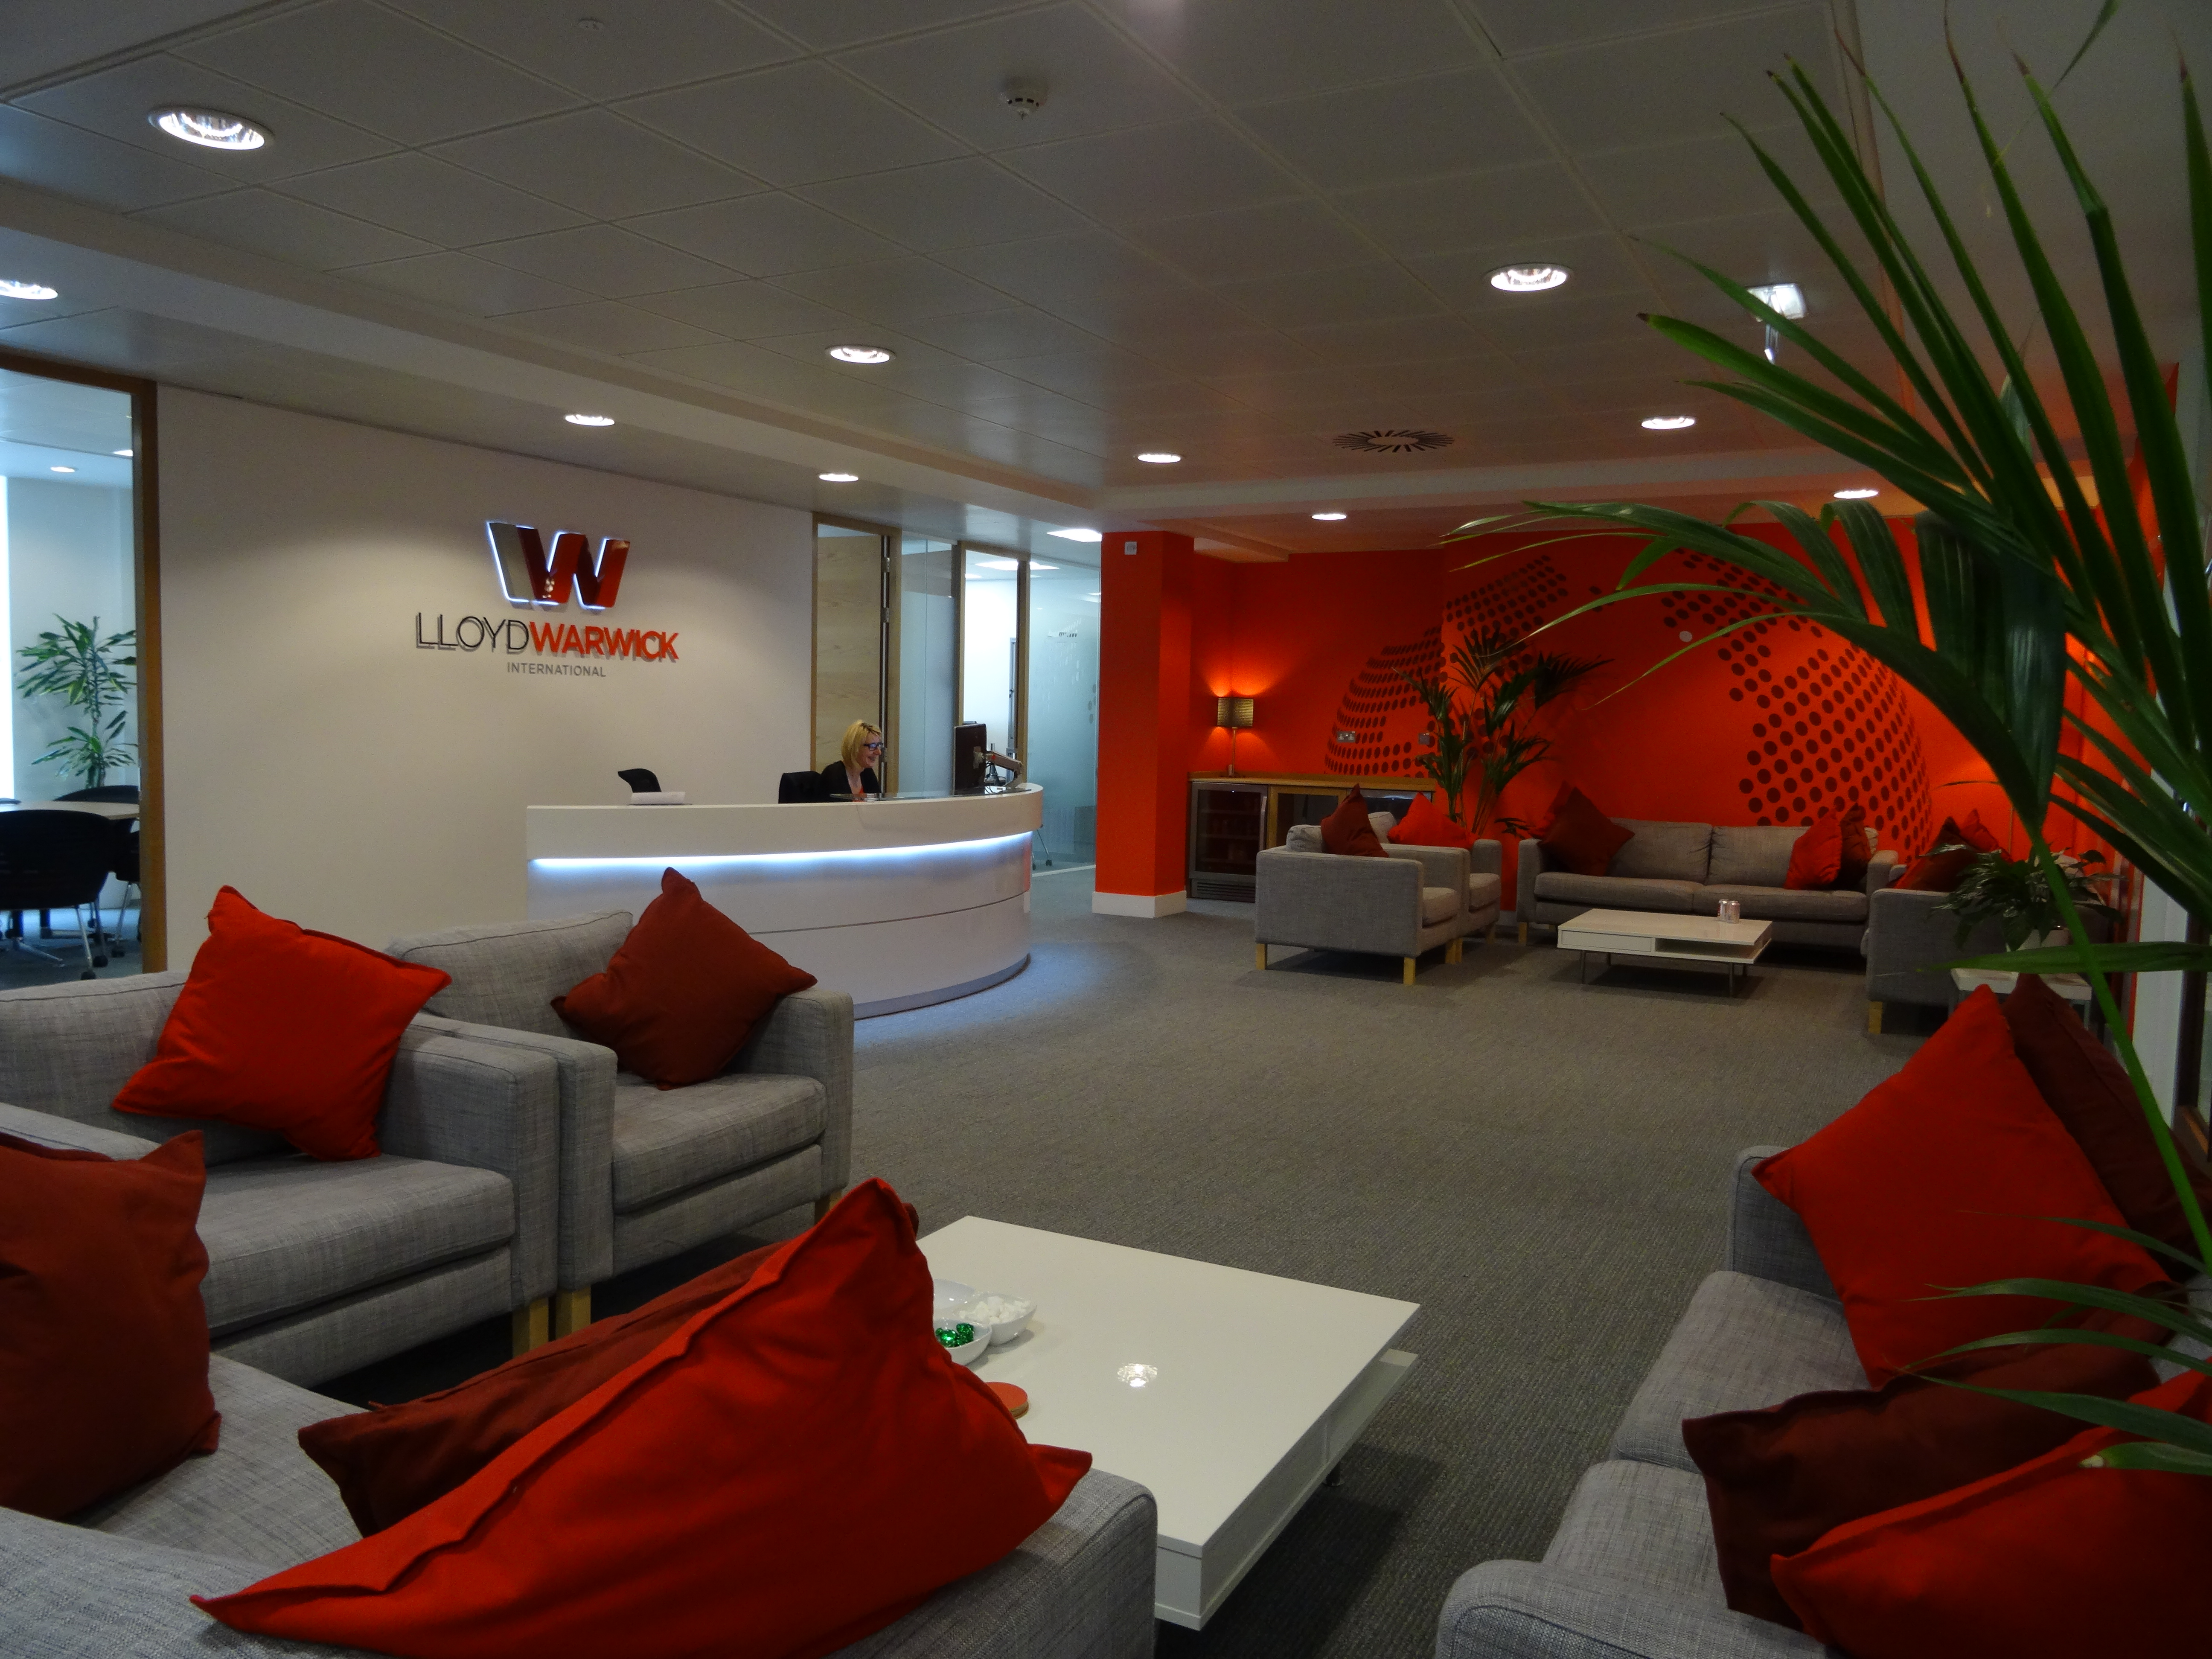 London Based Lloyd Warwick International Is A Dynamic And Integral Part Of  The Crawford U0026 Company Family.